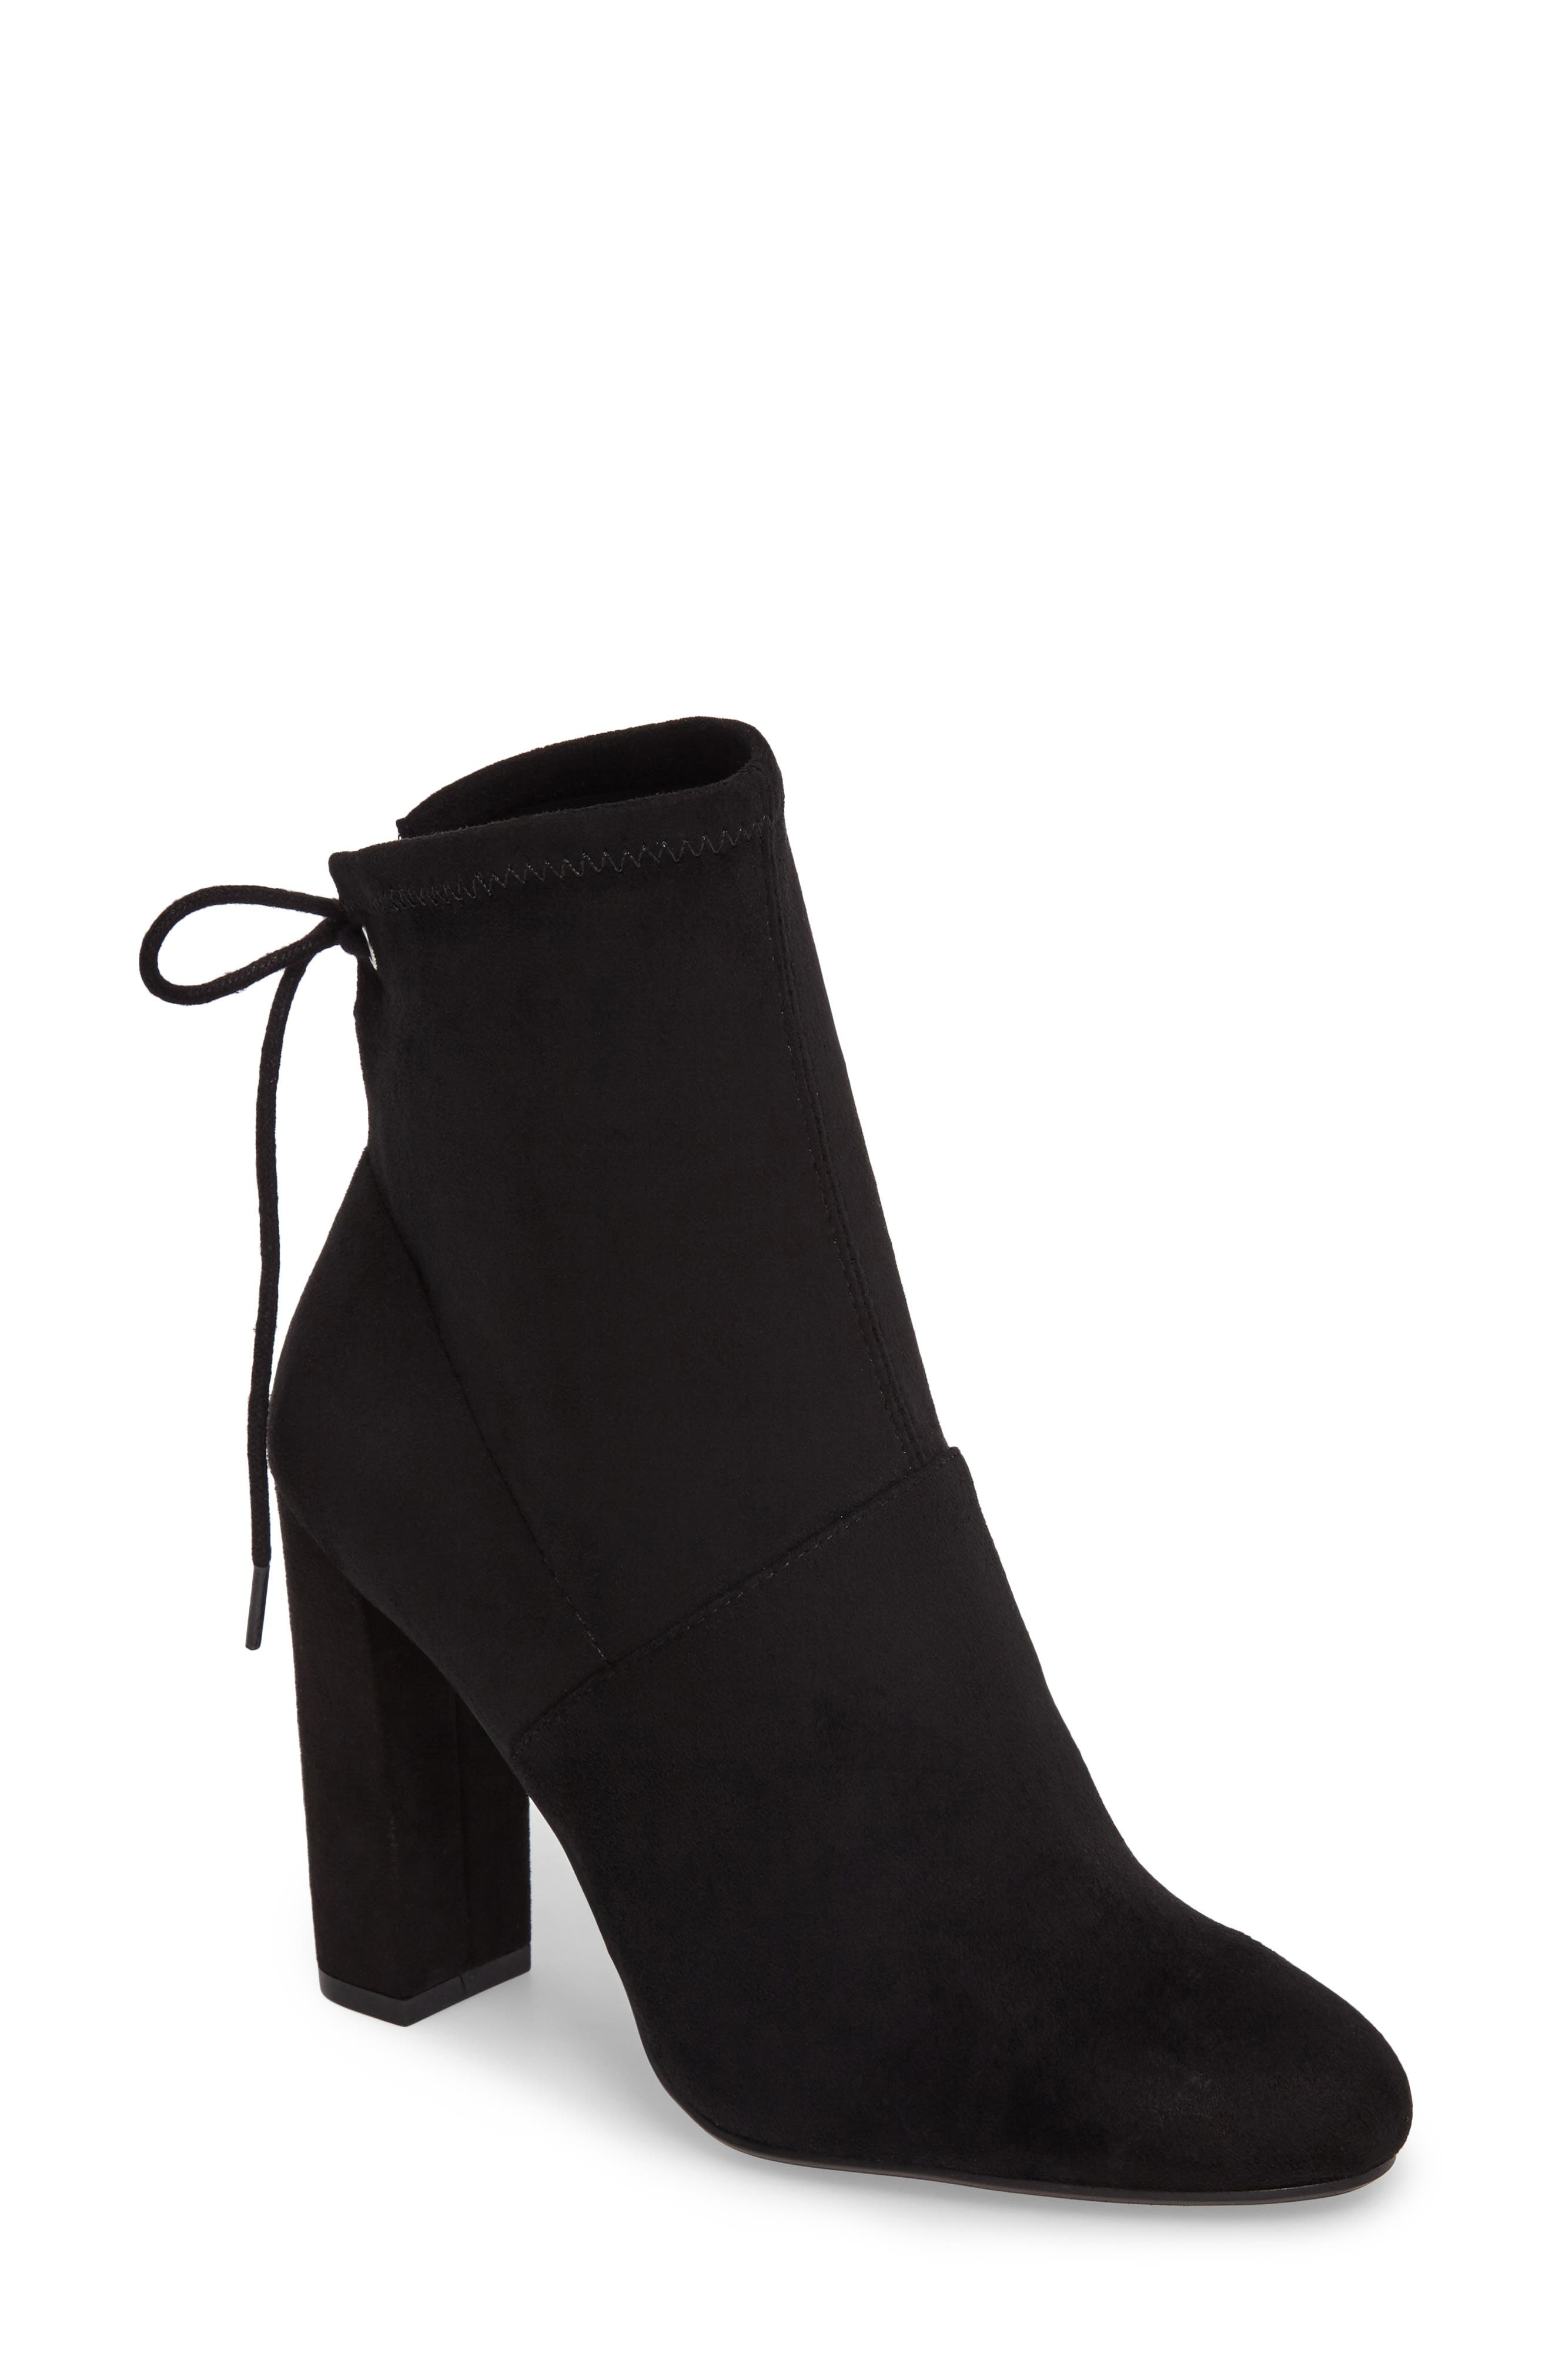 Enact Tie-Back Bootie,                         Main,                         color, Black